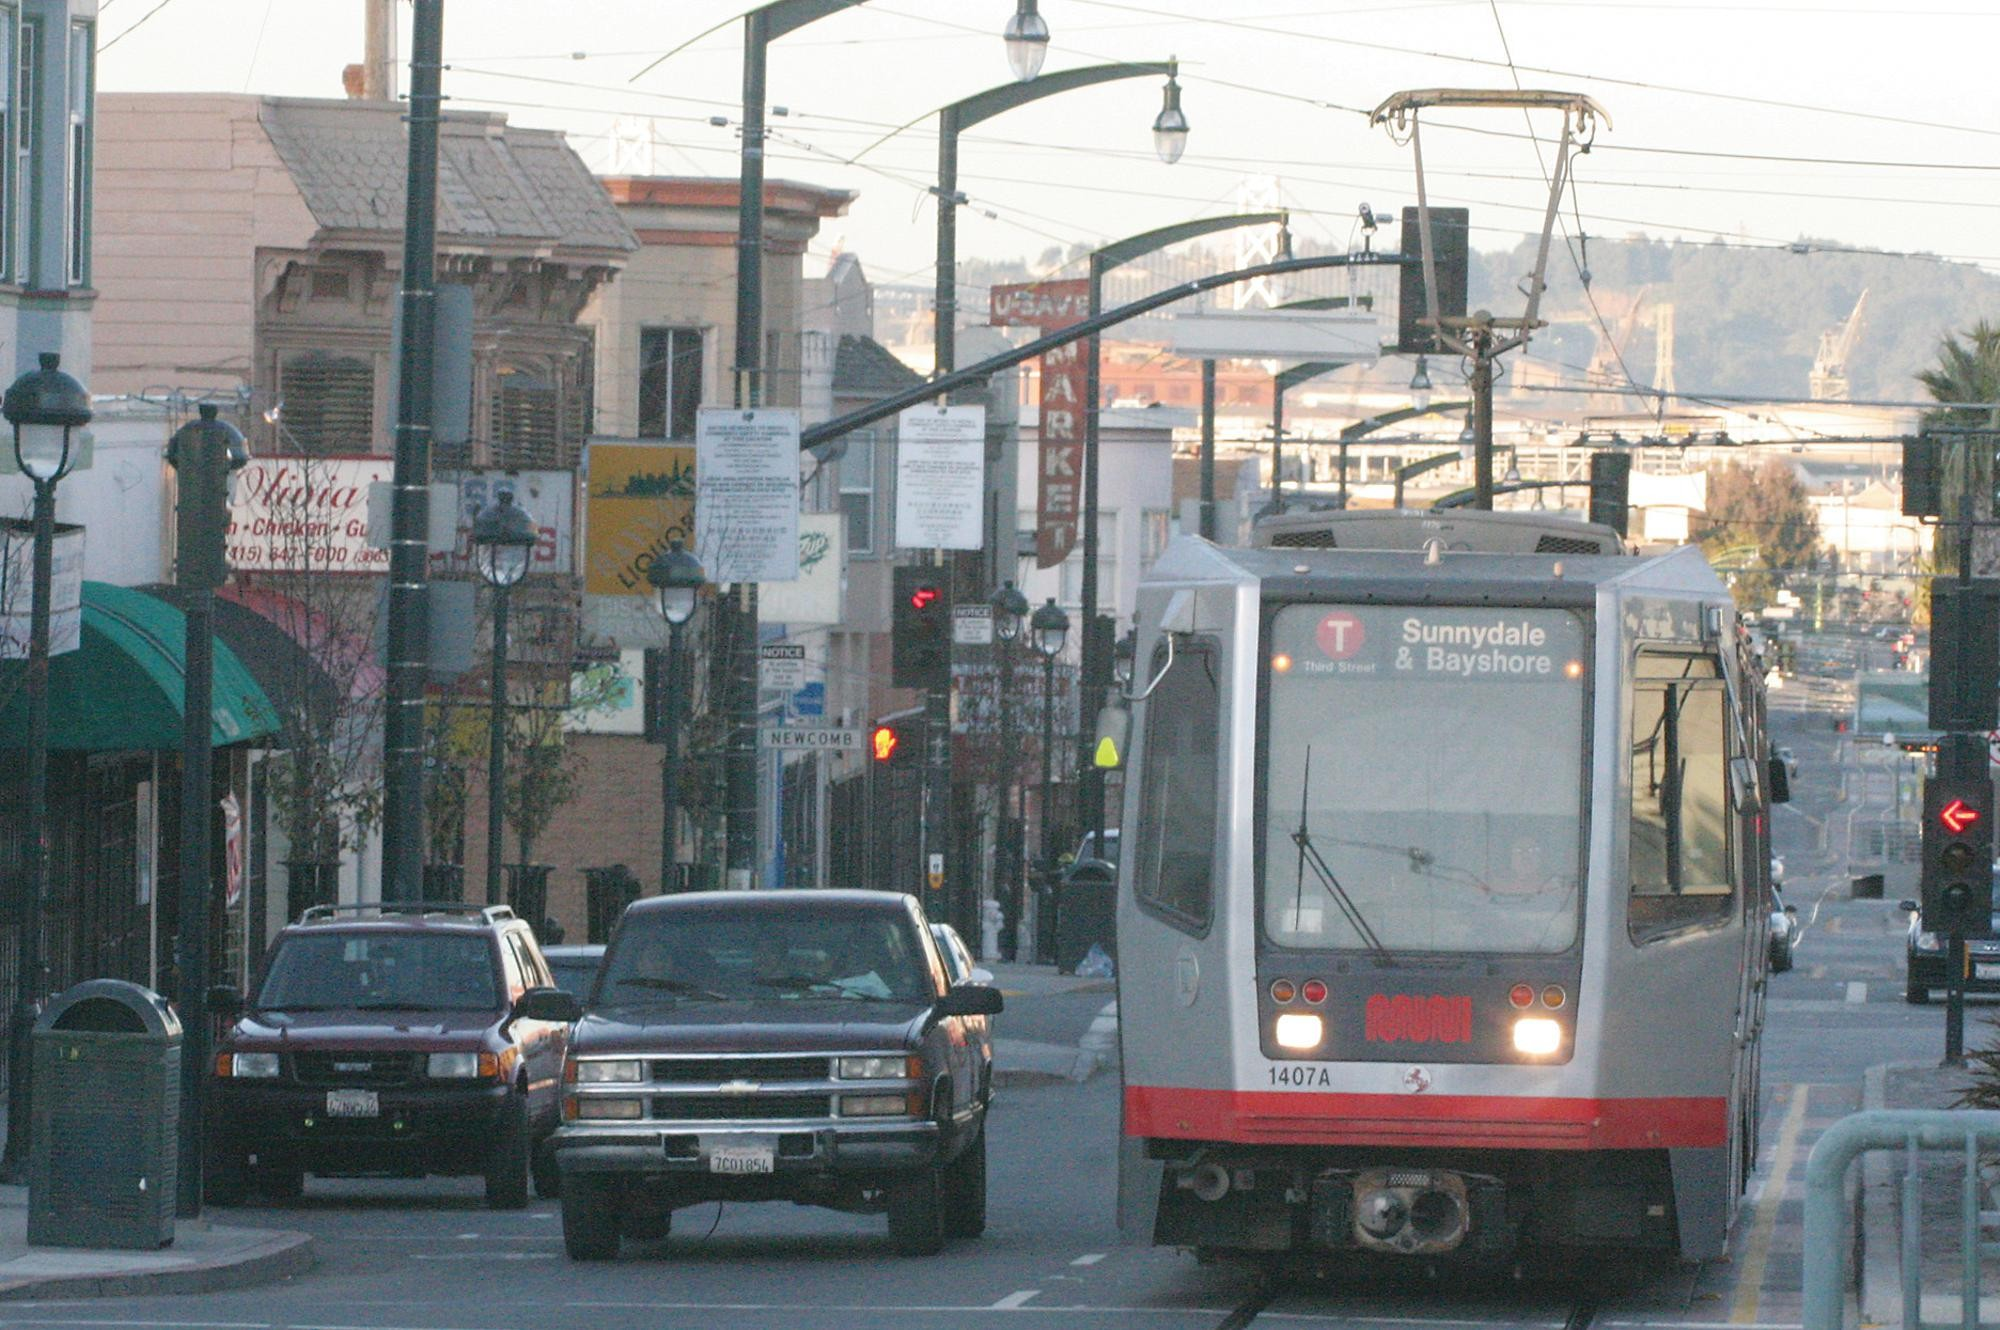 The first true light-rail line in the mostly streetcar MUNI system, the T-Third Street runs through Mission Bay and connects to the existing MUNI network along the southern Embarcadero and below Market Street.